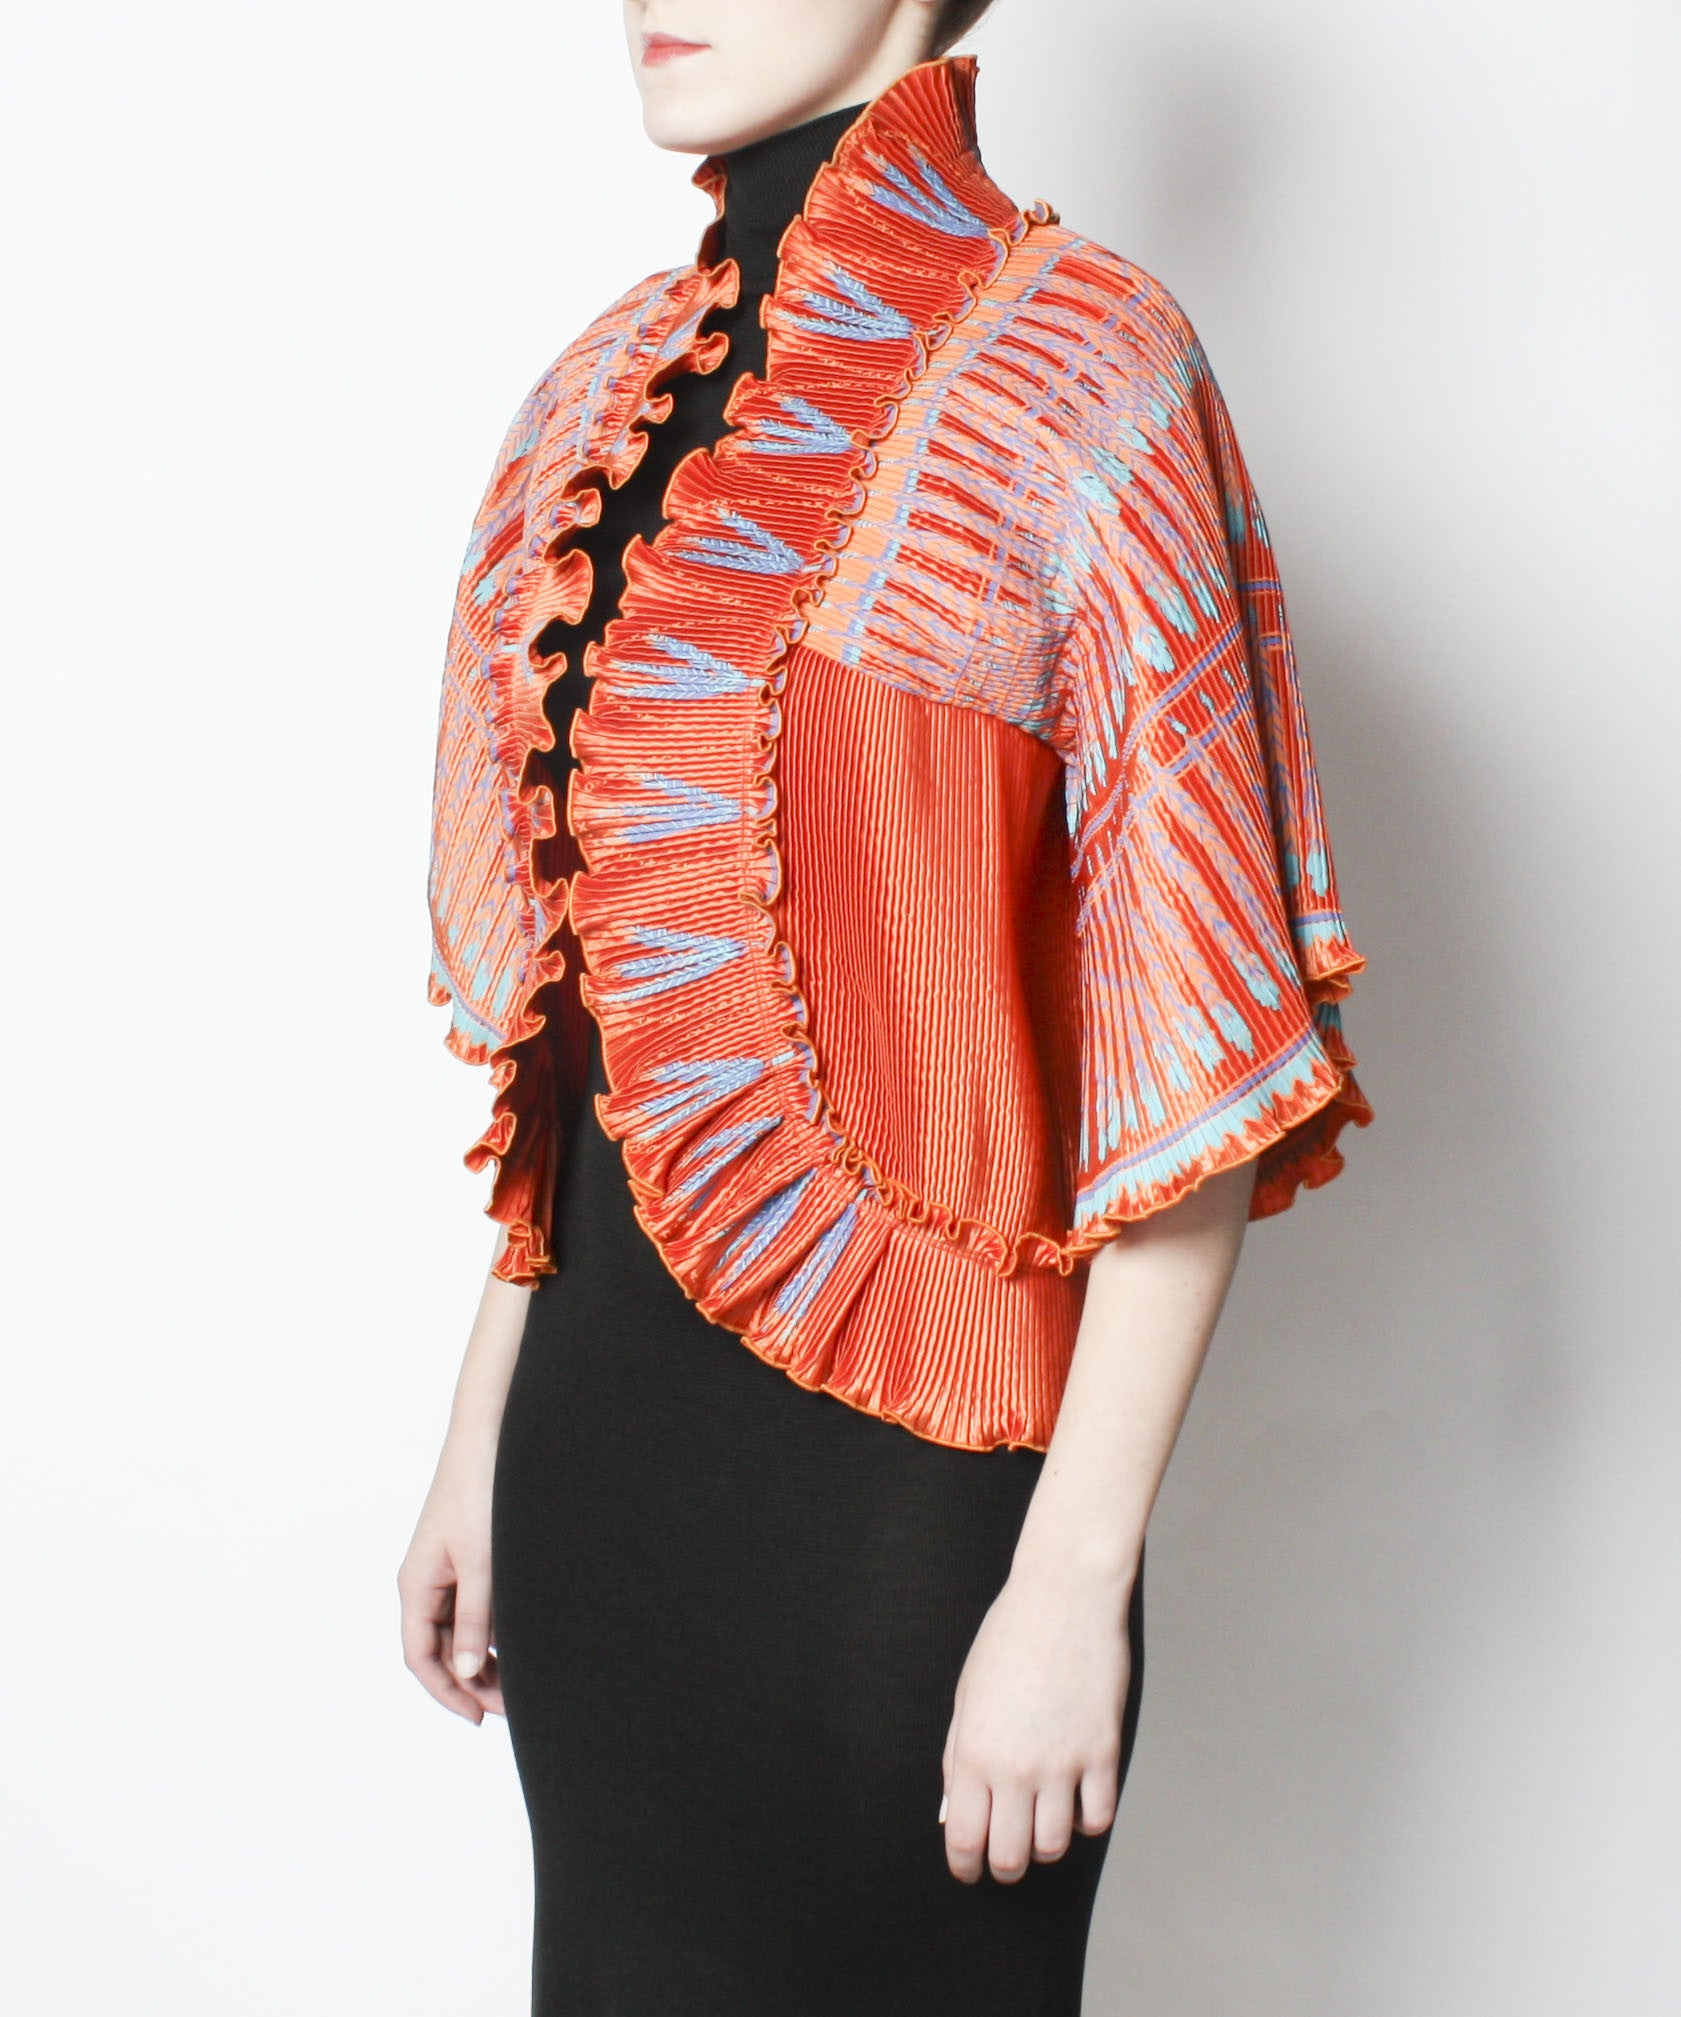 Zandra Rhodes Ayers Rock Collection 1980s Silkscreened Pleated Jacket - C.Madeleine's